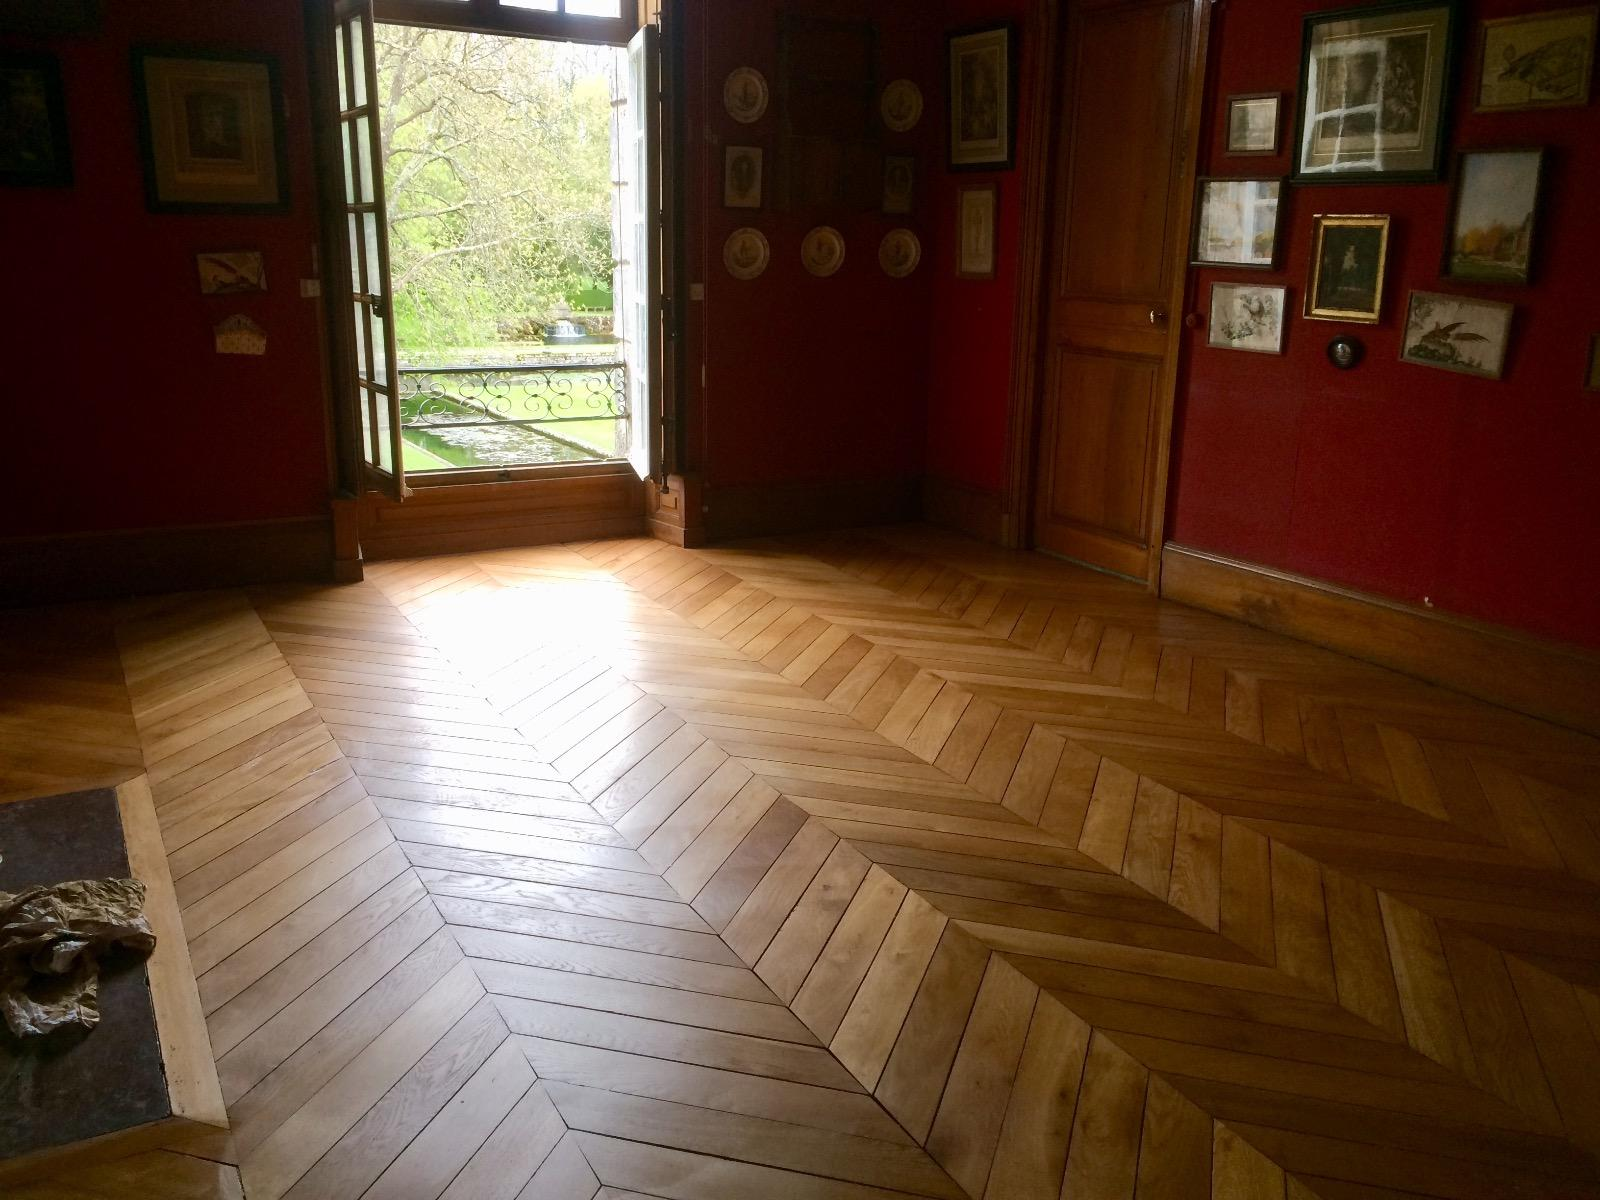 Rénovation parquet – Paris 16